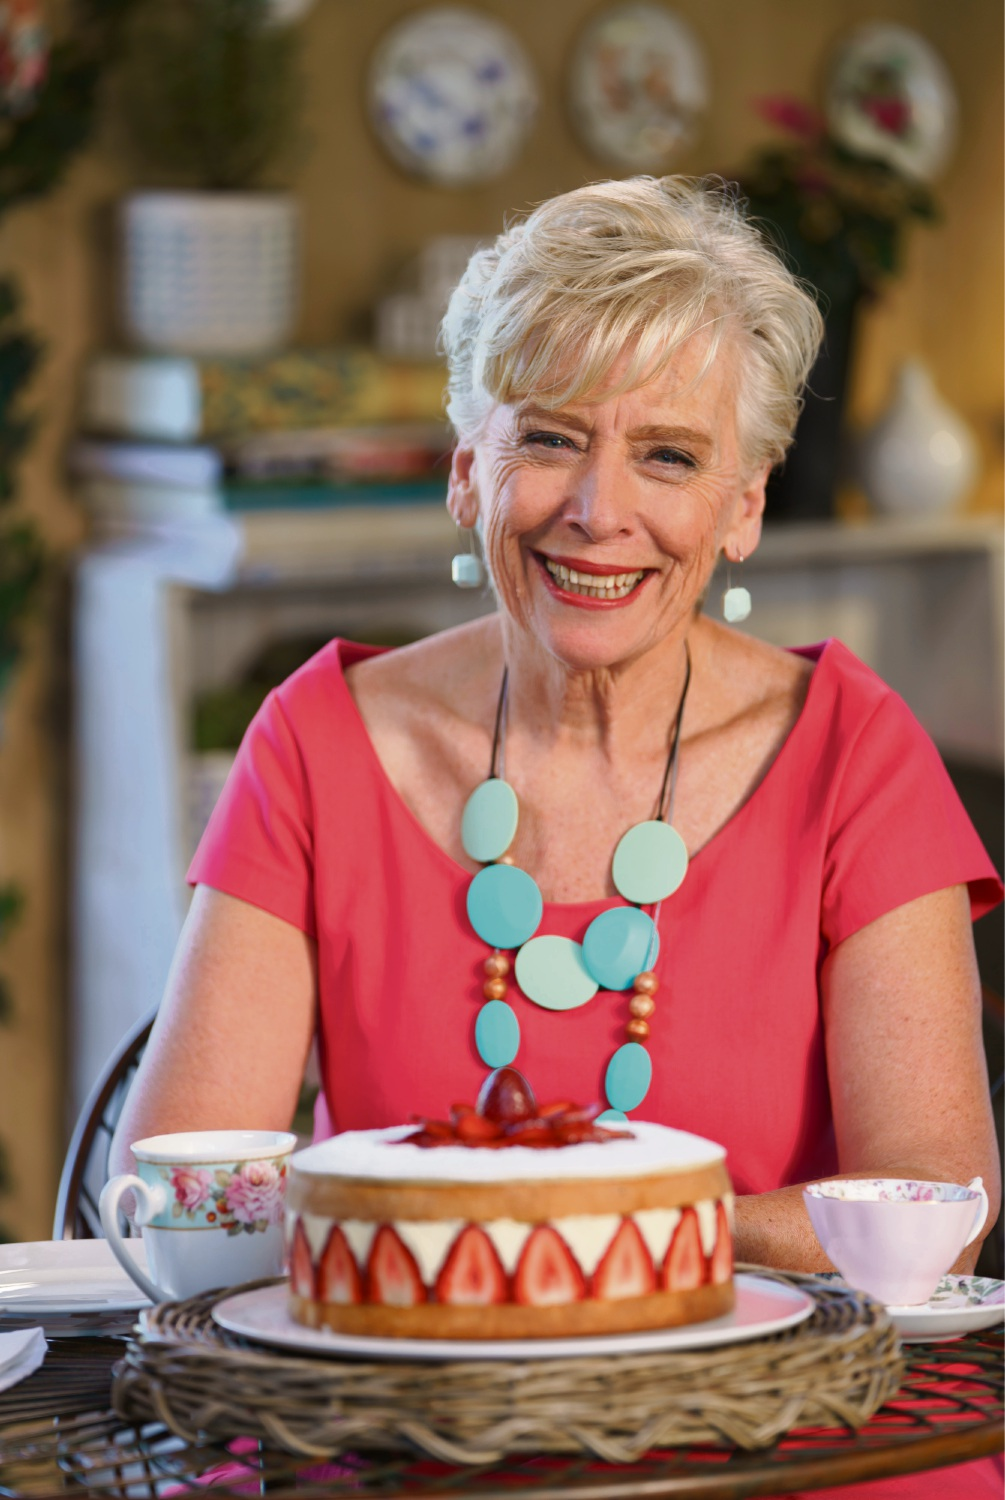 Culinary icon Maggie Beer said people hosting a Christmas feast should prepare food in advance for a stress-free celebration. She returns as a judge in the third season of the Great Australian Bake Off, which airs on Foxtel's Lifestyle channel from January 18.